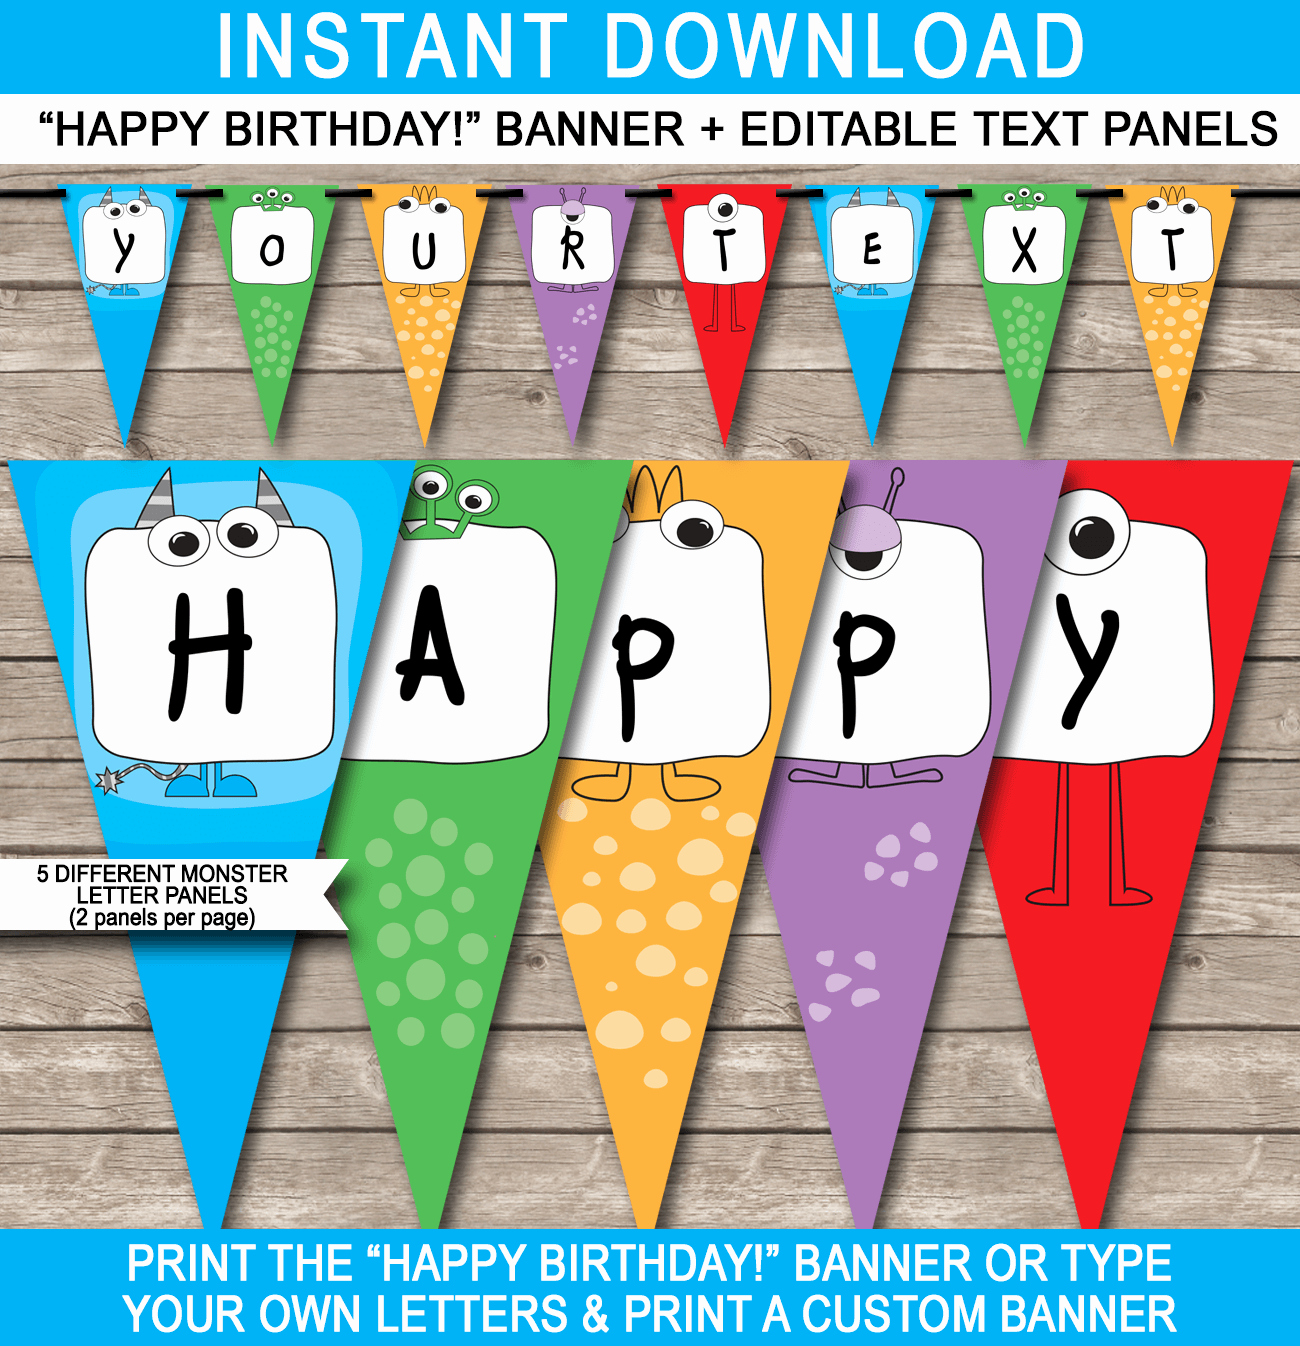 Happy Birthday Banner Template Printable Beautiful Monster Party Banner Template Birthday Banner